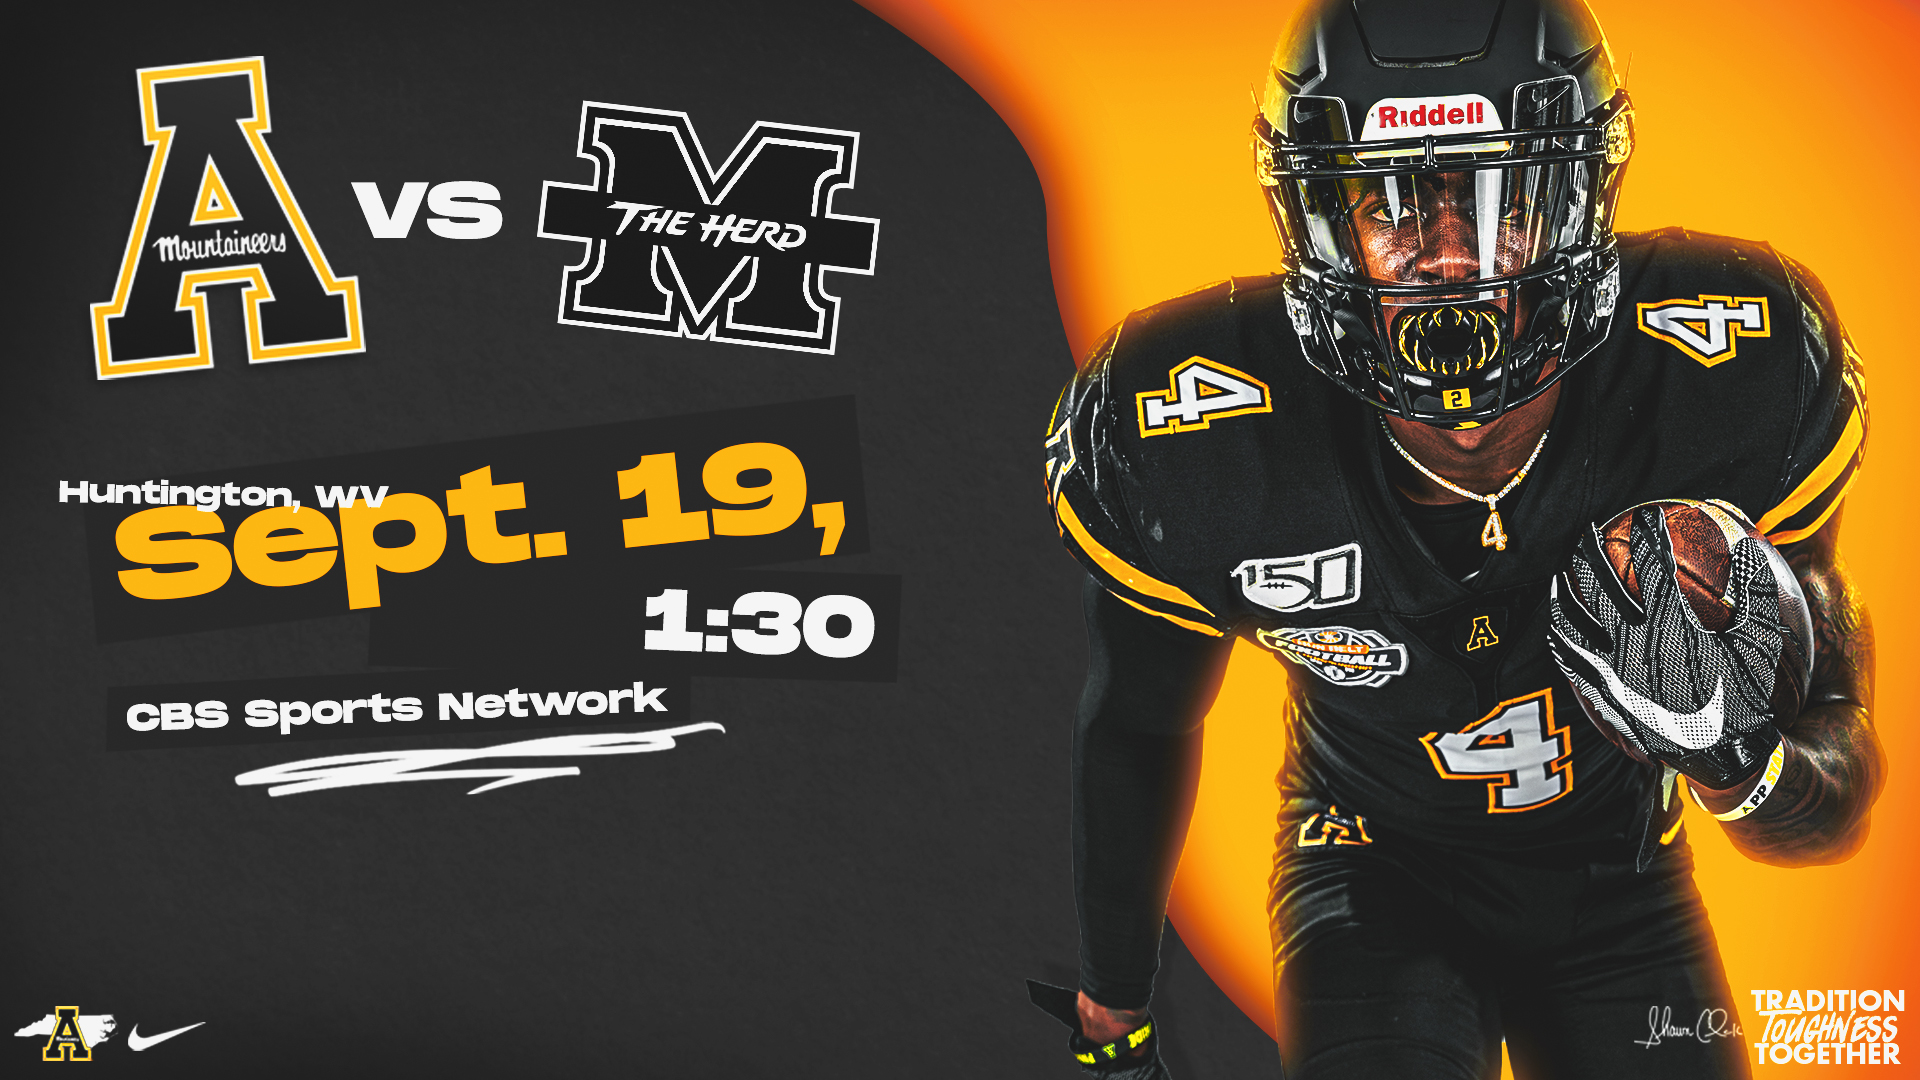 App State Marshall To Kick Off At 1 30 On Cbssn App State Athletics